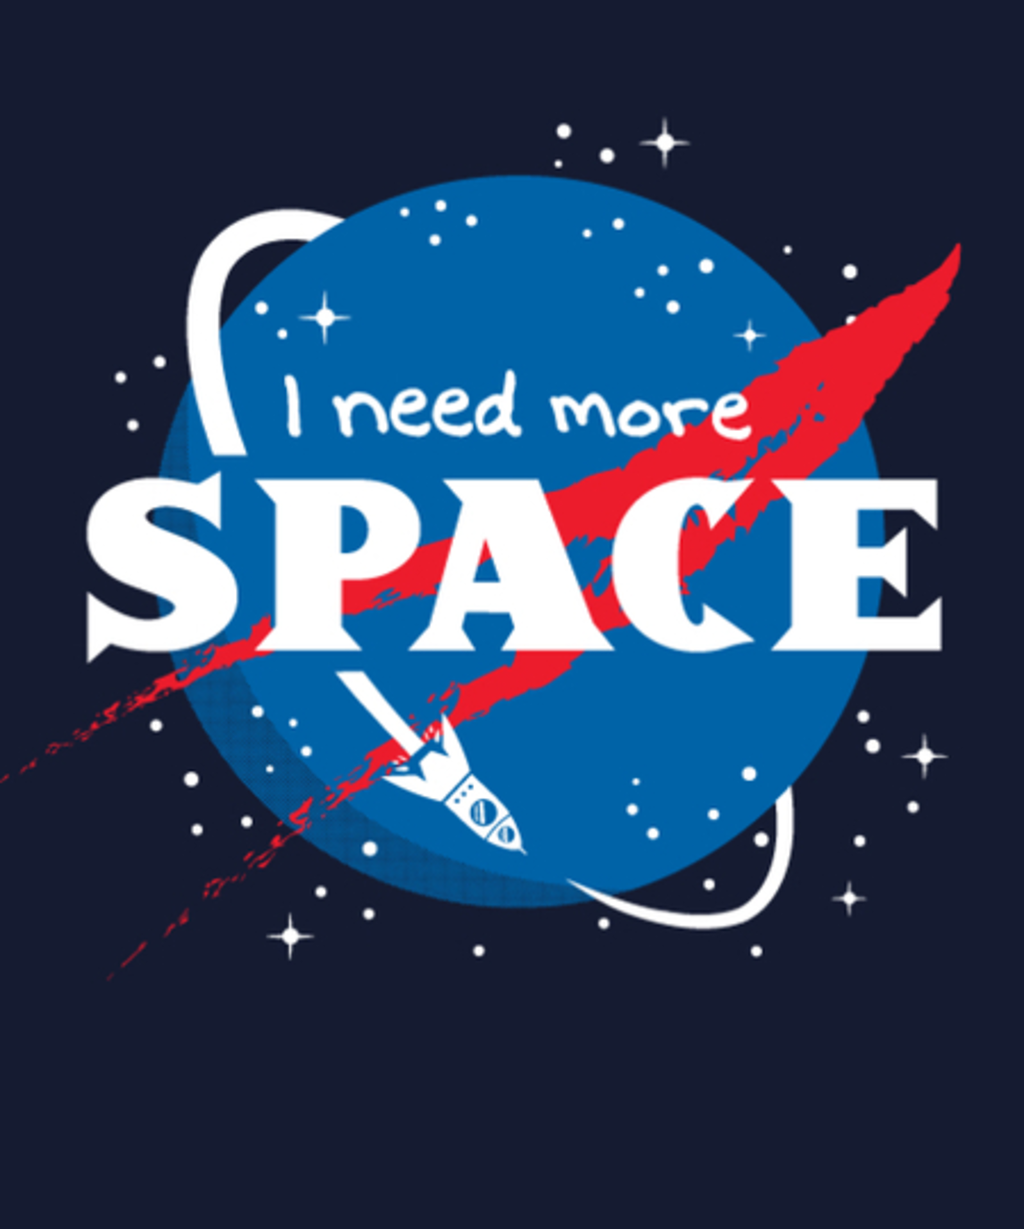 Qwertee: I need more space